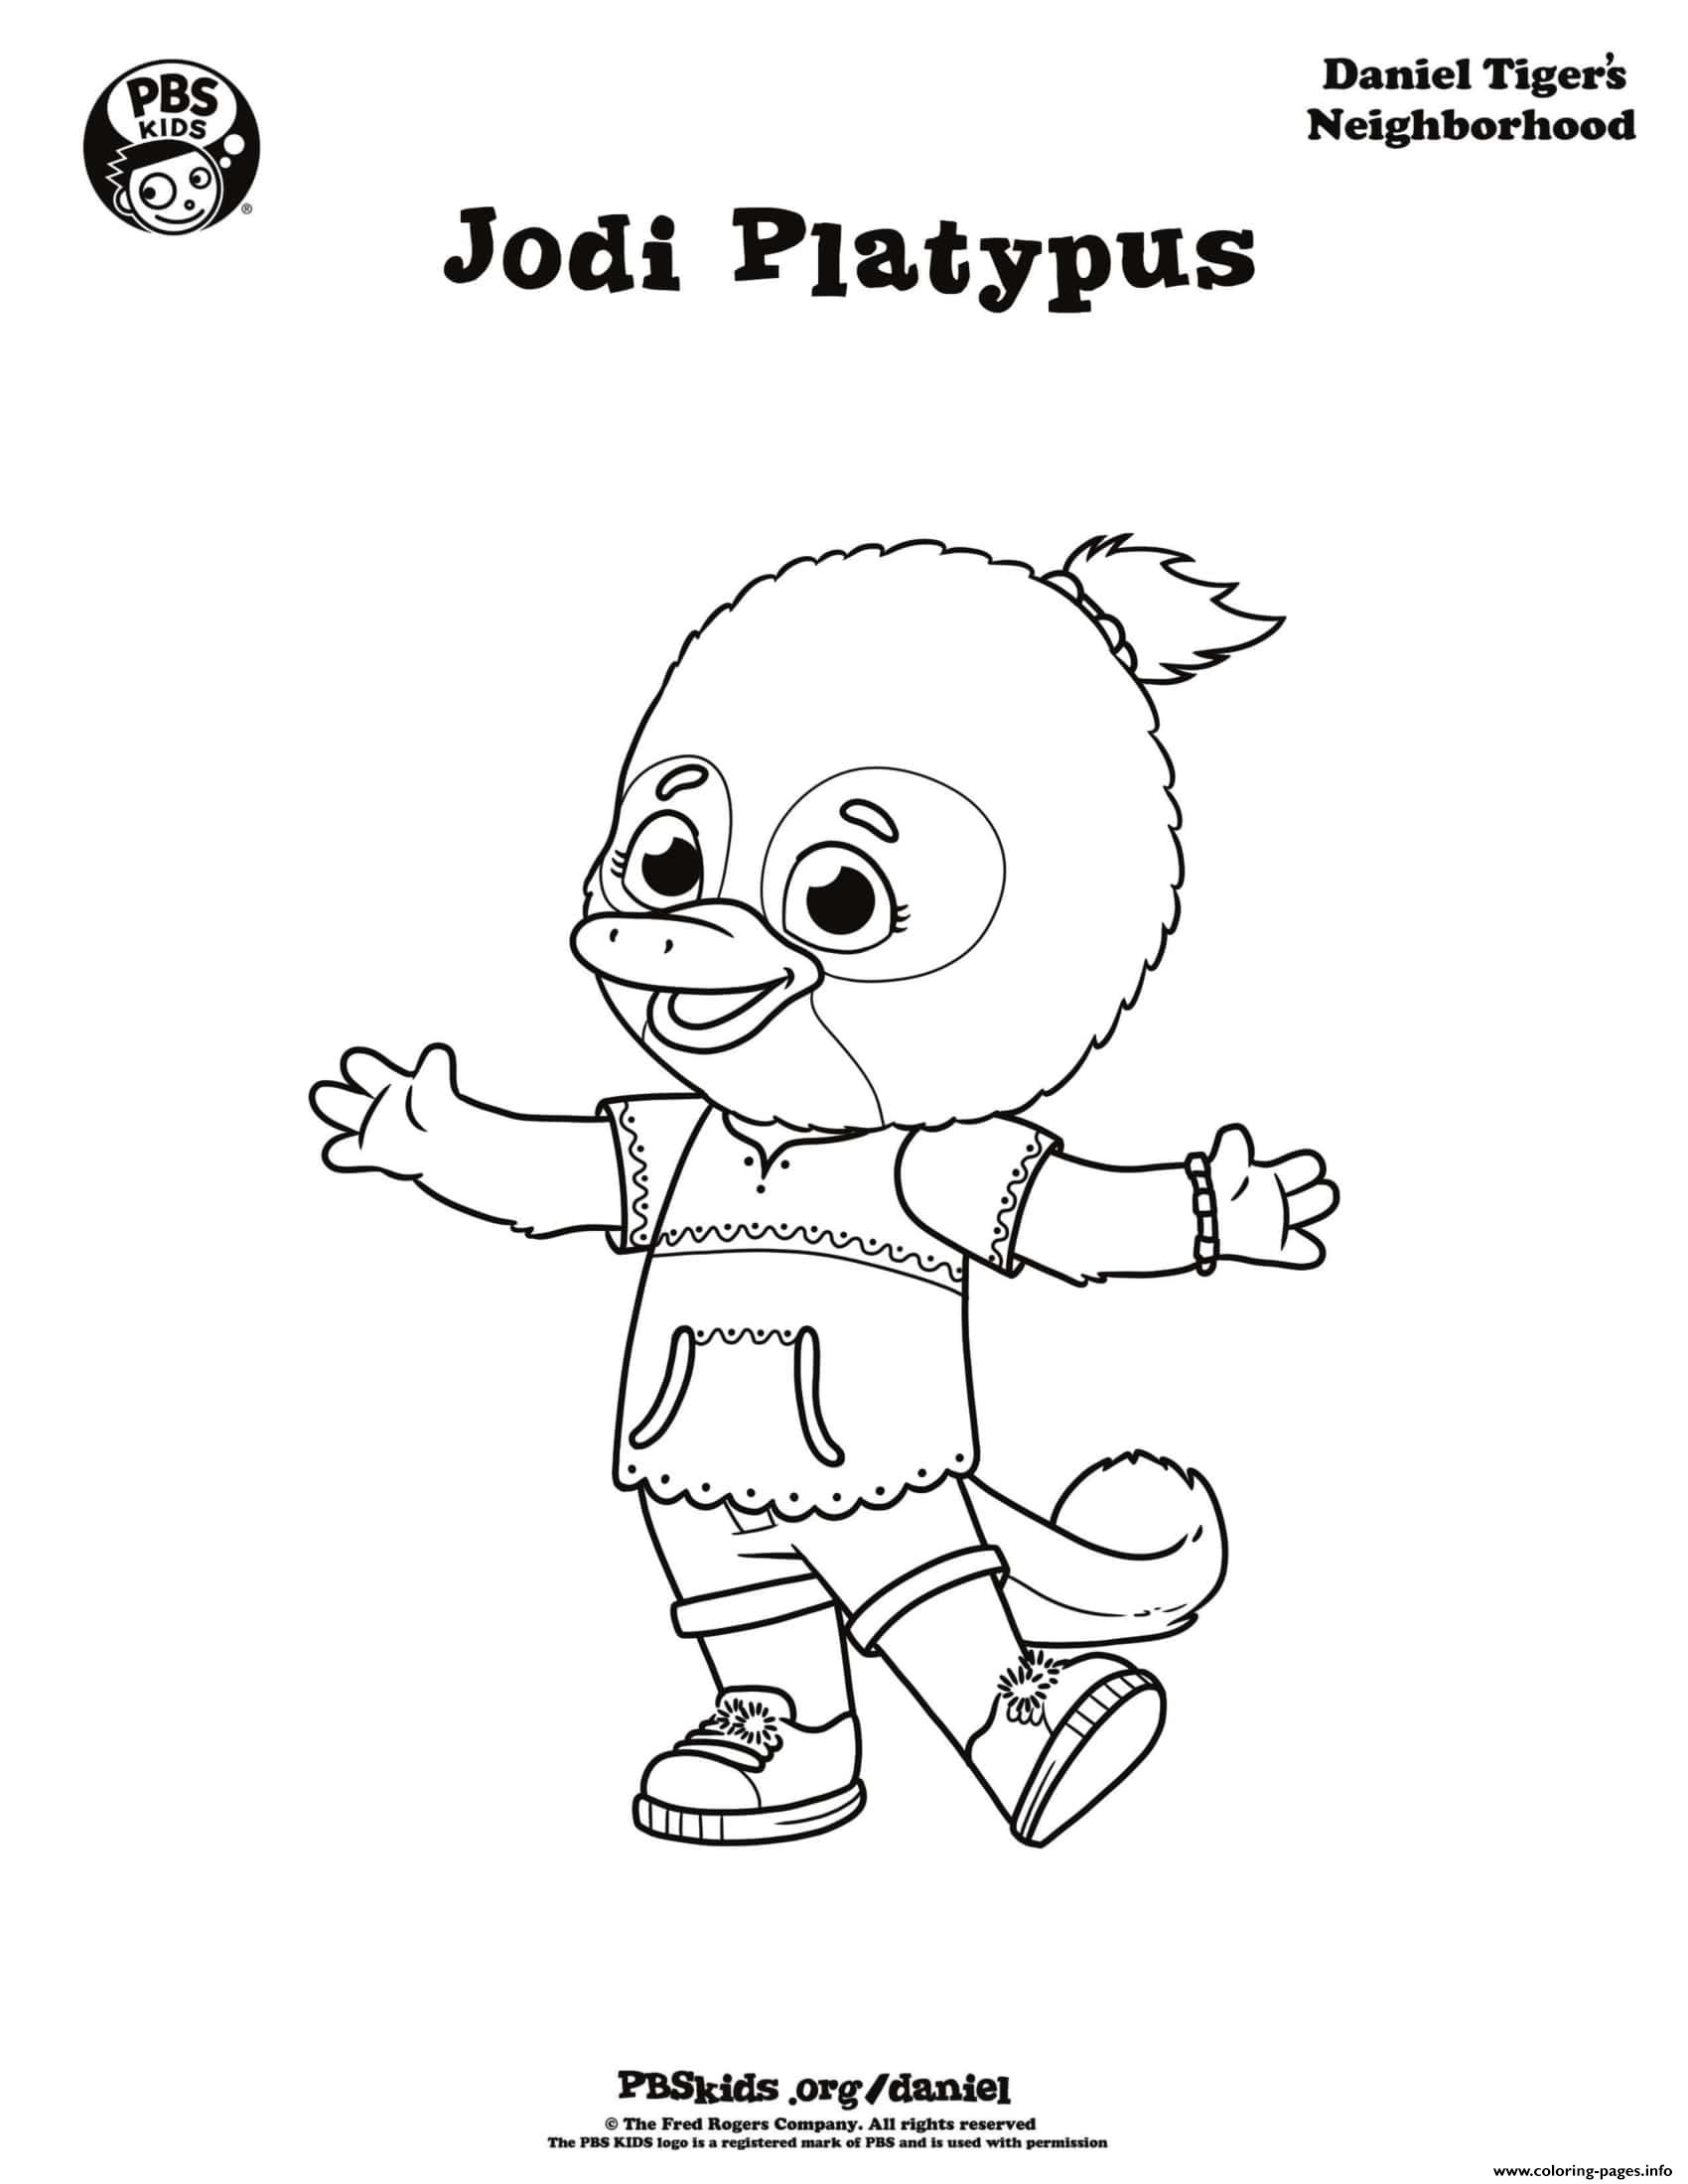 picture relating to Daniel Tiger Coloring Pages Printable named Jodi Platypus Daniel Tiger Min Coloring Internet pages Printable